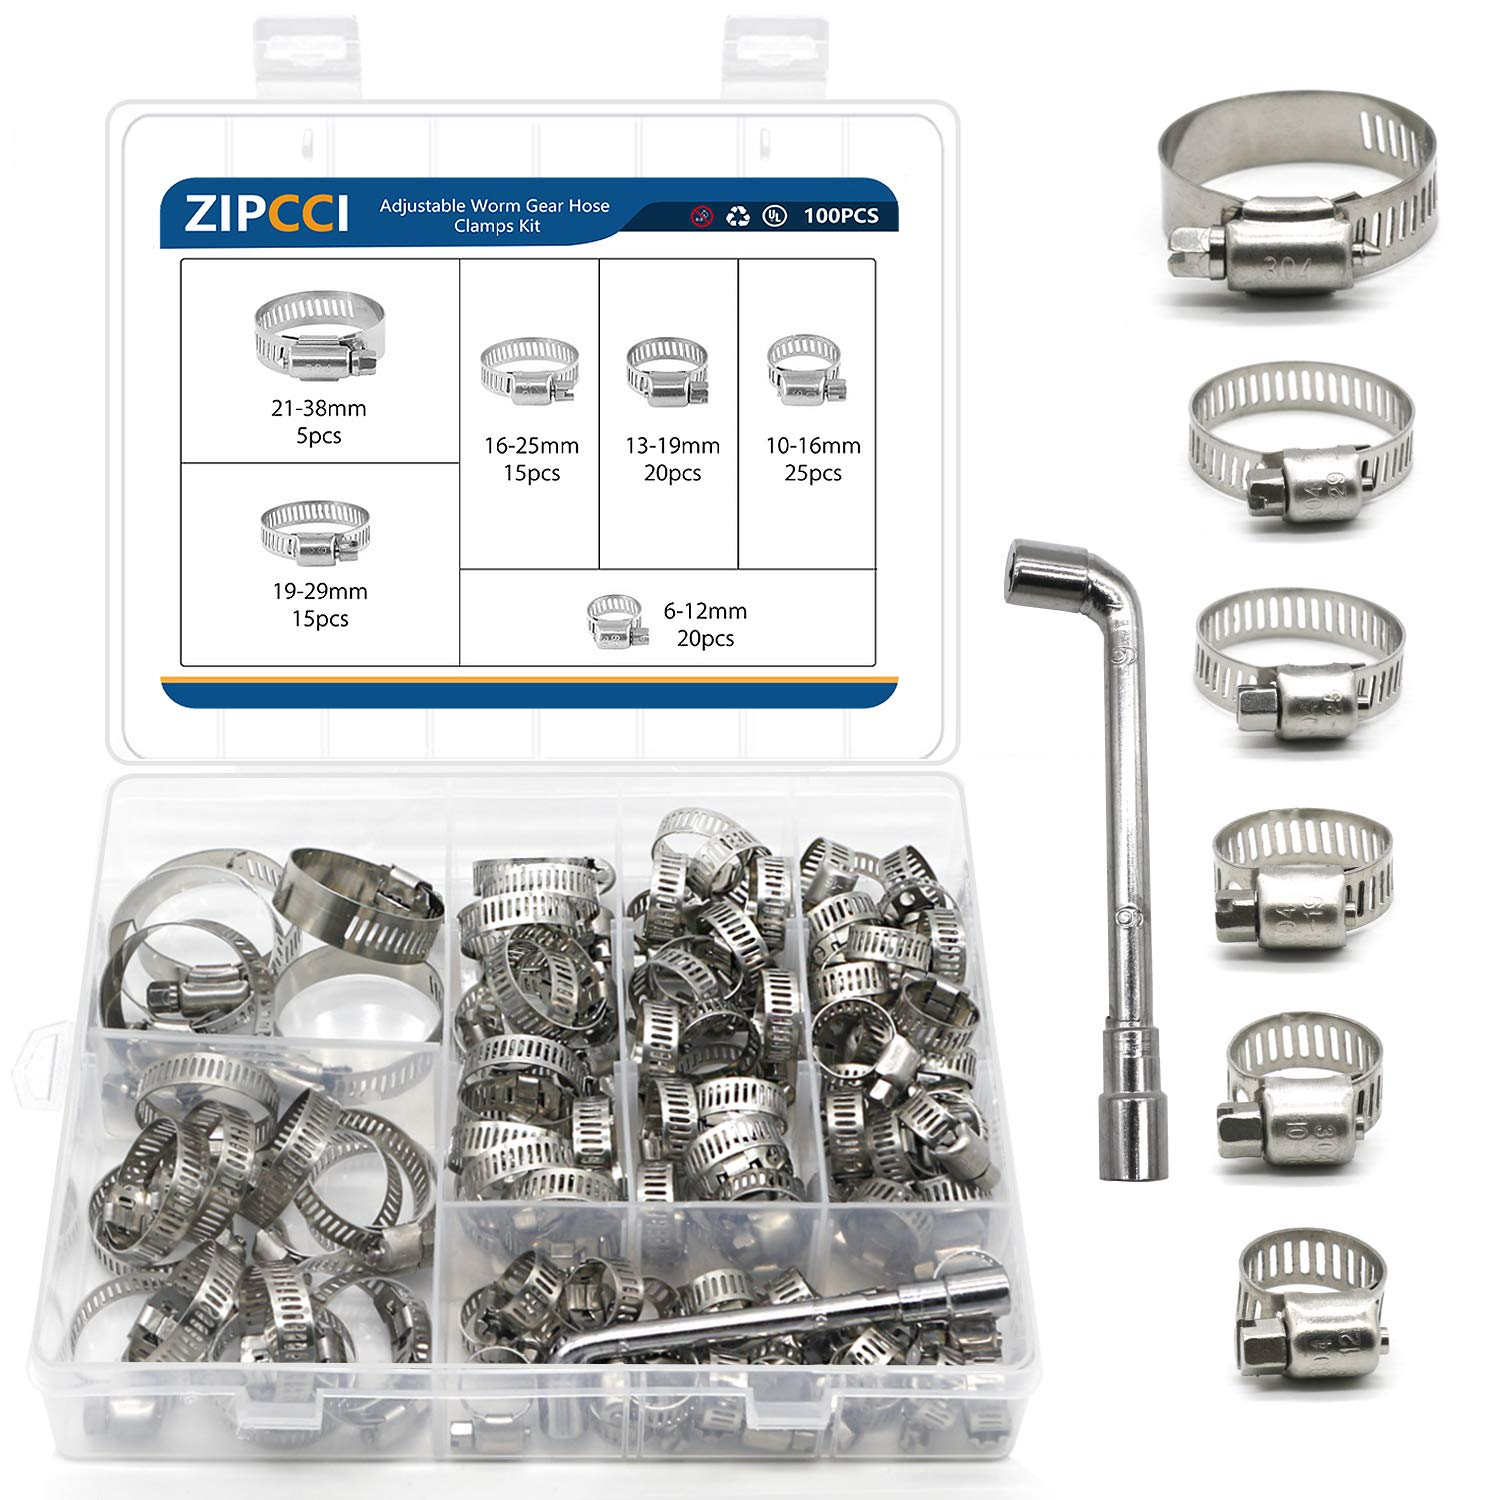 101 Pcs Hose Clamps Stainless Steel, Worm Gear Hose Clamp Assortment Kit Adjustable 6-38mm Range, Pipe Clamp for Water Tube, Automotive and Marine with Socket Wrench (1/4 to 1-1/2 inches)